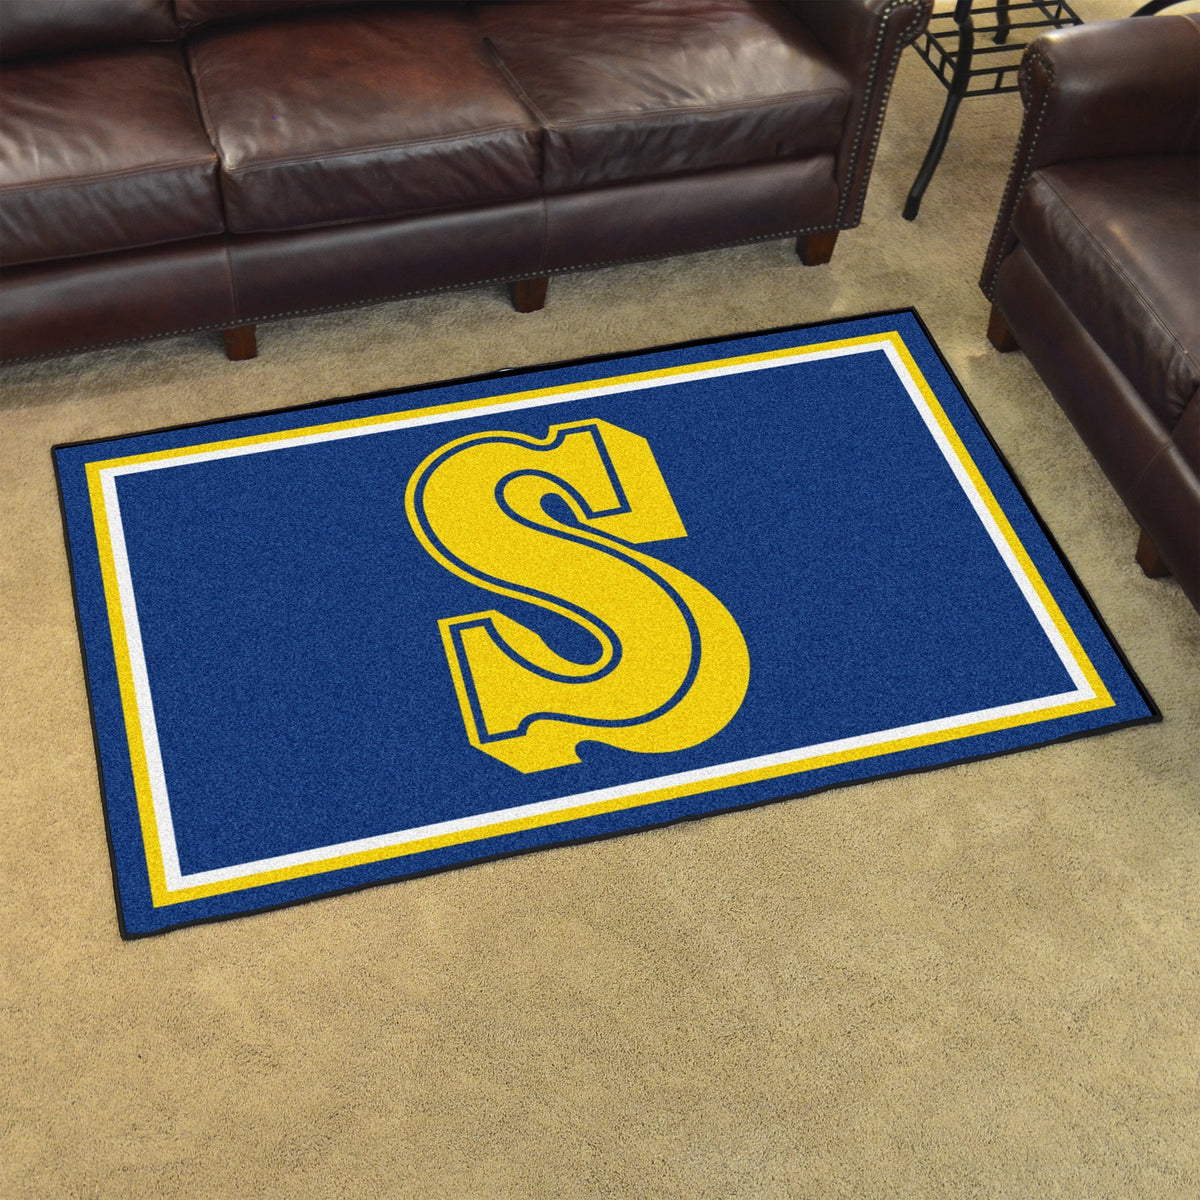 MLB Retro - 4' x 6' Rug MLB Retro Mats, Plush Rugs, 4x6 Rug, MLB, Home Fan Mats Seattle Mariners 2